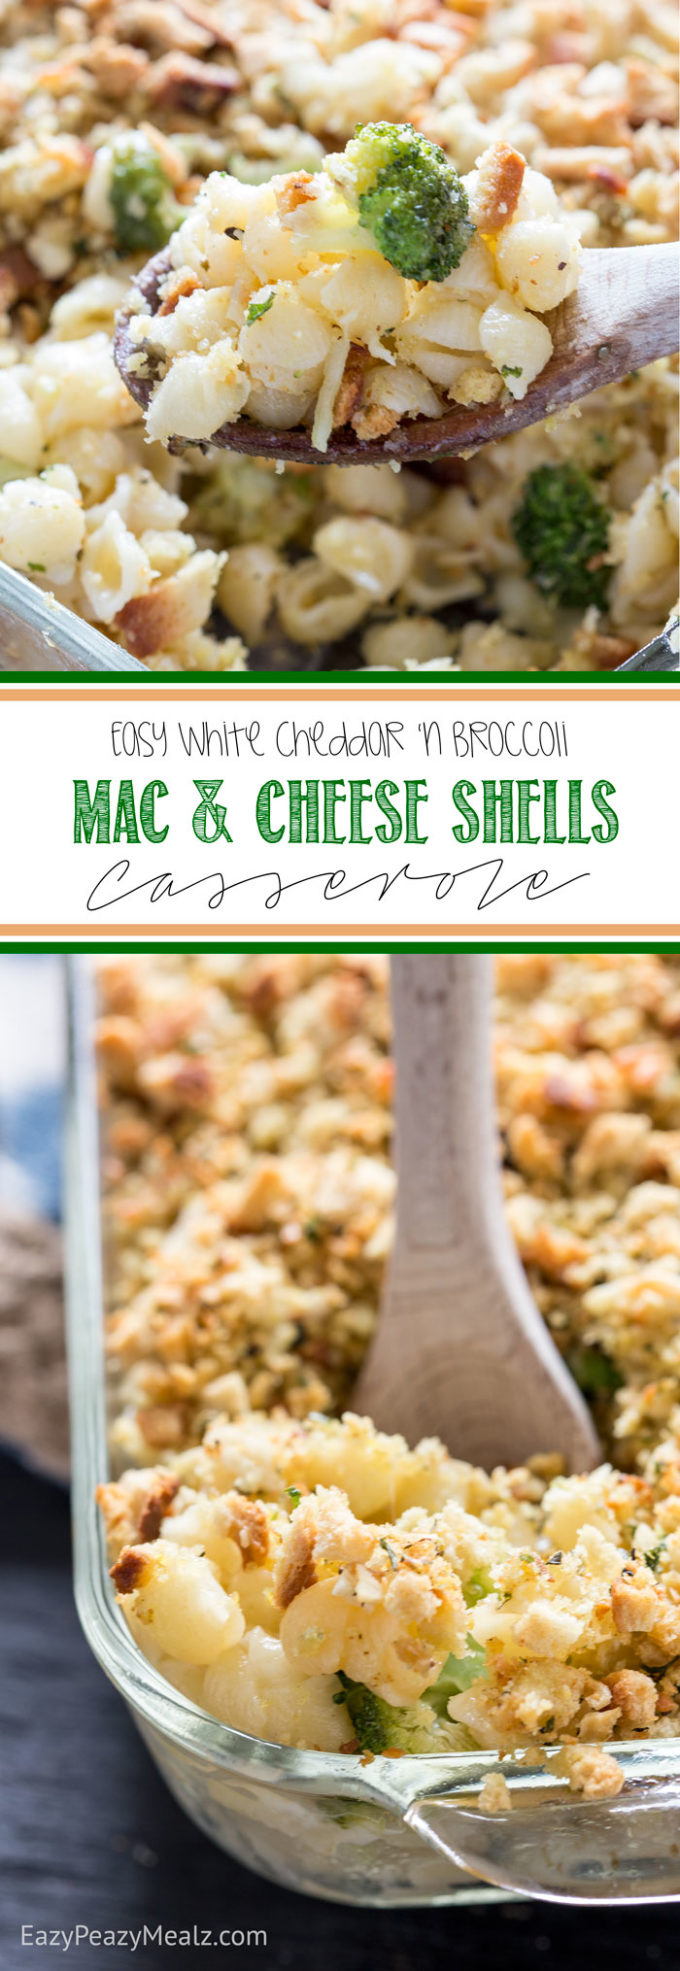 An Easy, Cheesy, White cheddar and broccoli mac and cheese shells casserole. This is quick, uses smarter ingredients, and is something the whole family will love.